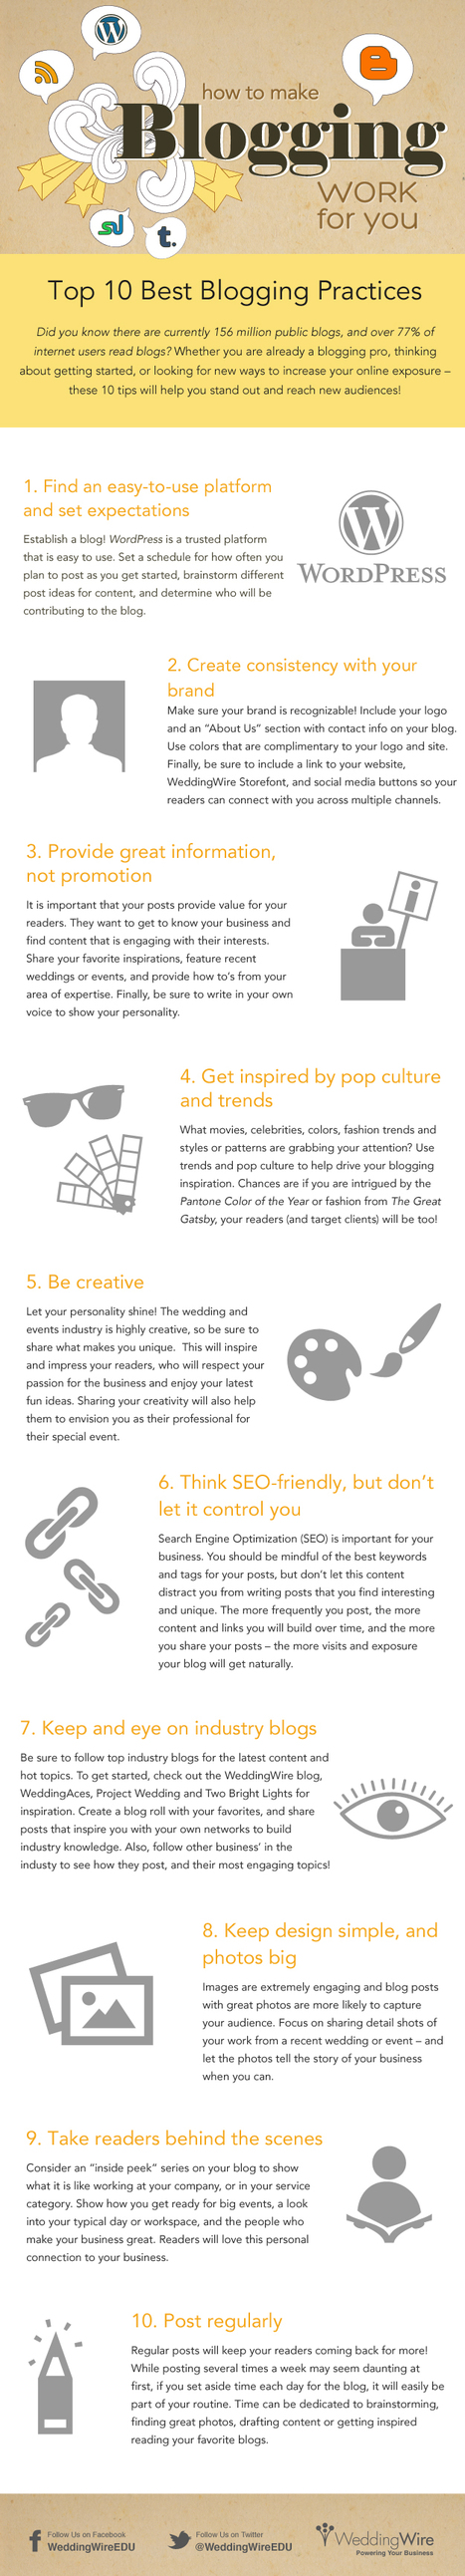 10 Best Blogging Practices [INFOGRAPHIC] - Digital Information World | #TheMarketingAutomationAlert | Content Strategy | Scoop.it